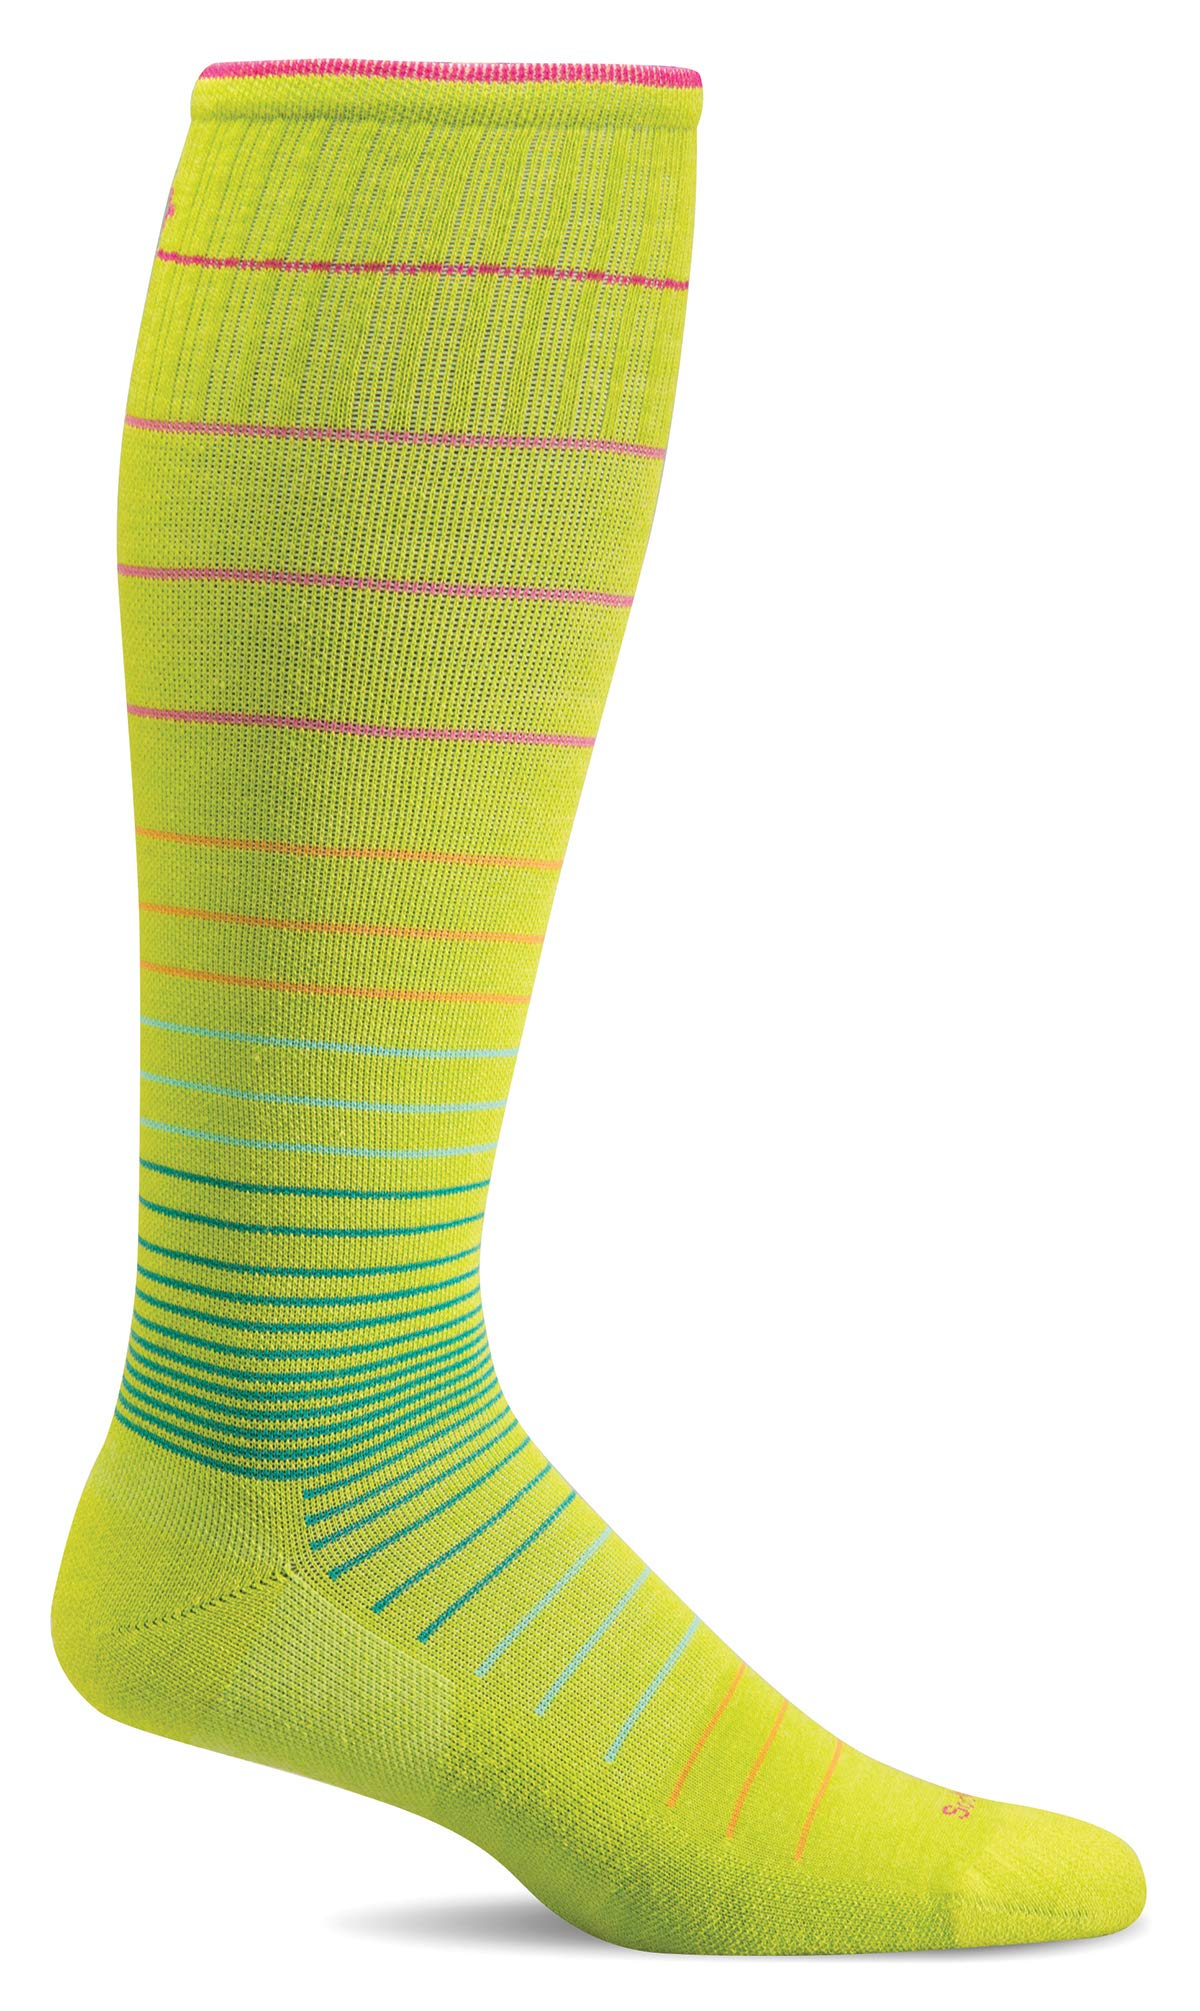 Sockwell Women's Circulator Moderate Compression Socks (Limelight, S/M)